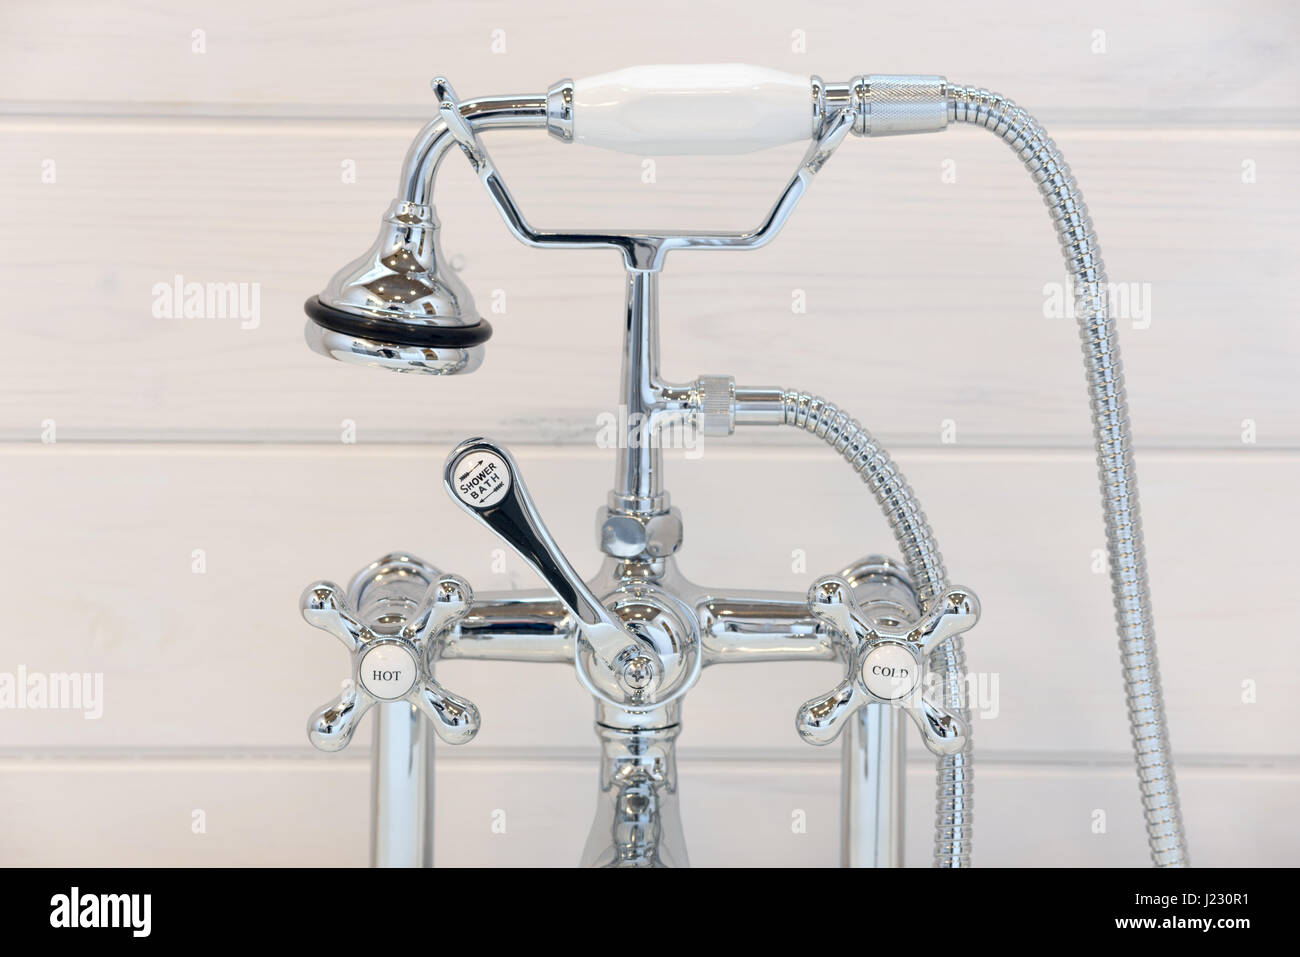 Vintage Bathtub Faucet And Shower Head Stock Photo 138978757 Alamy